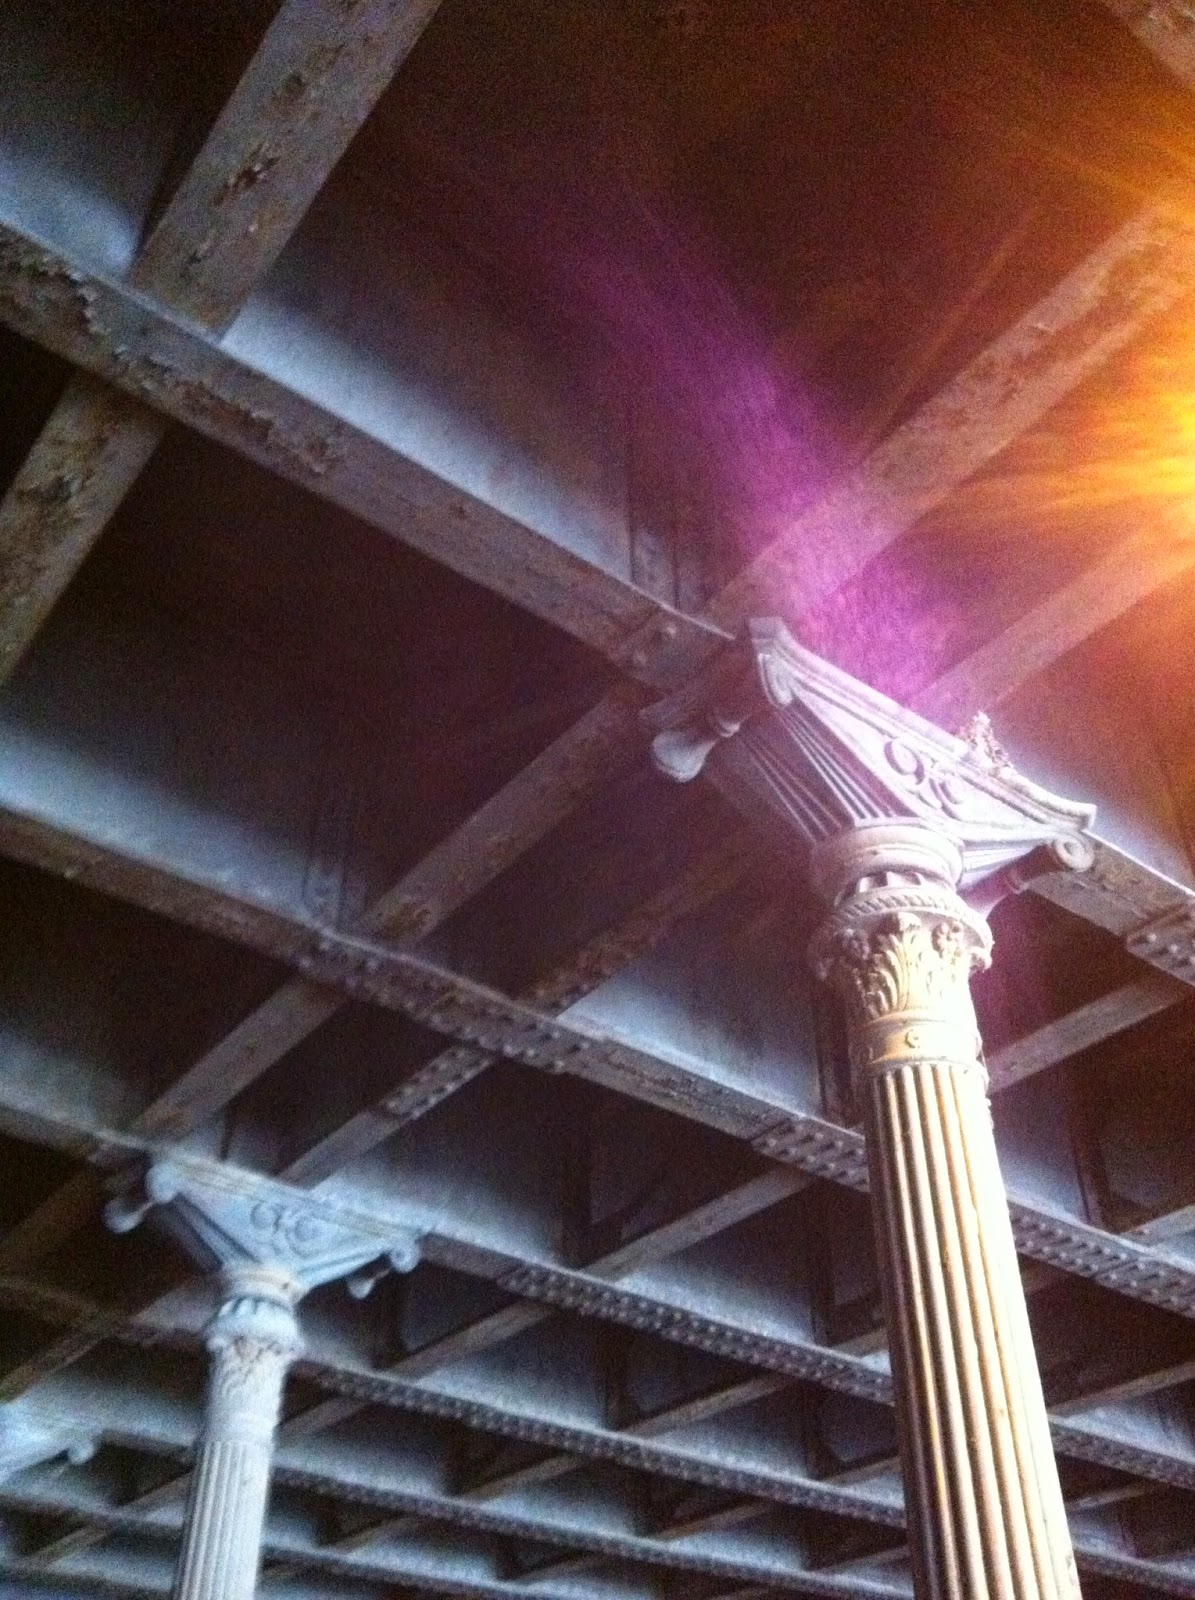 Corinthian-esque columns supporting the coffered ceiling of this tunnel.